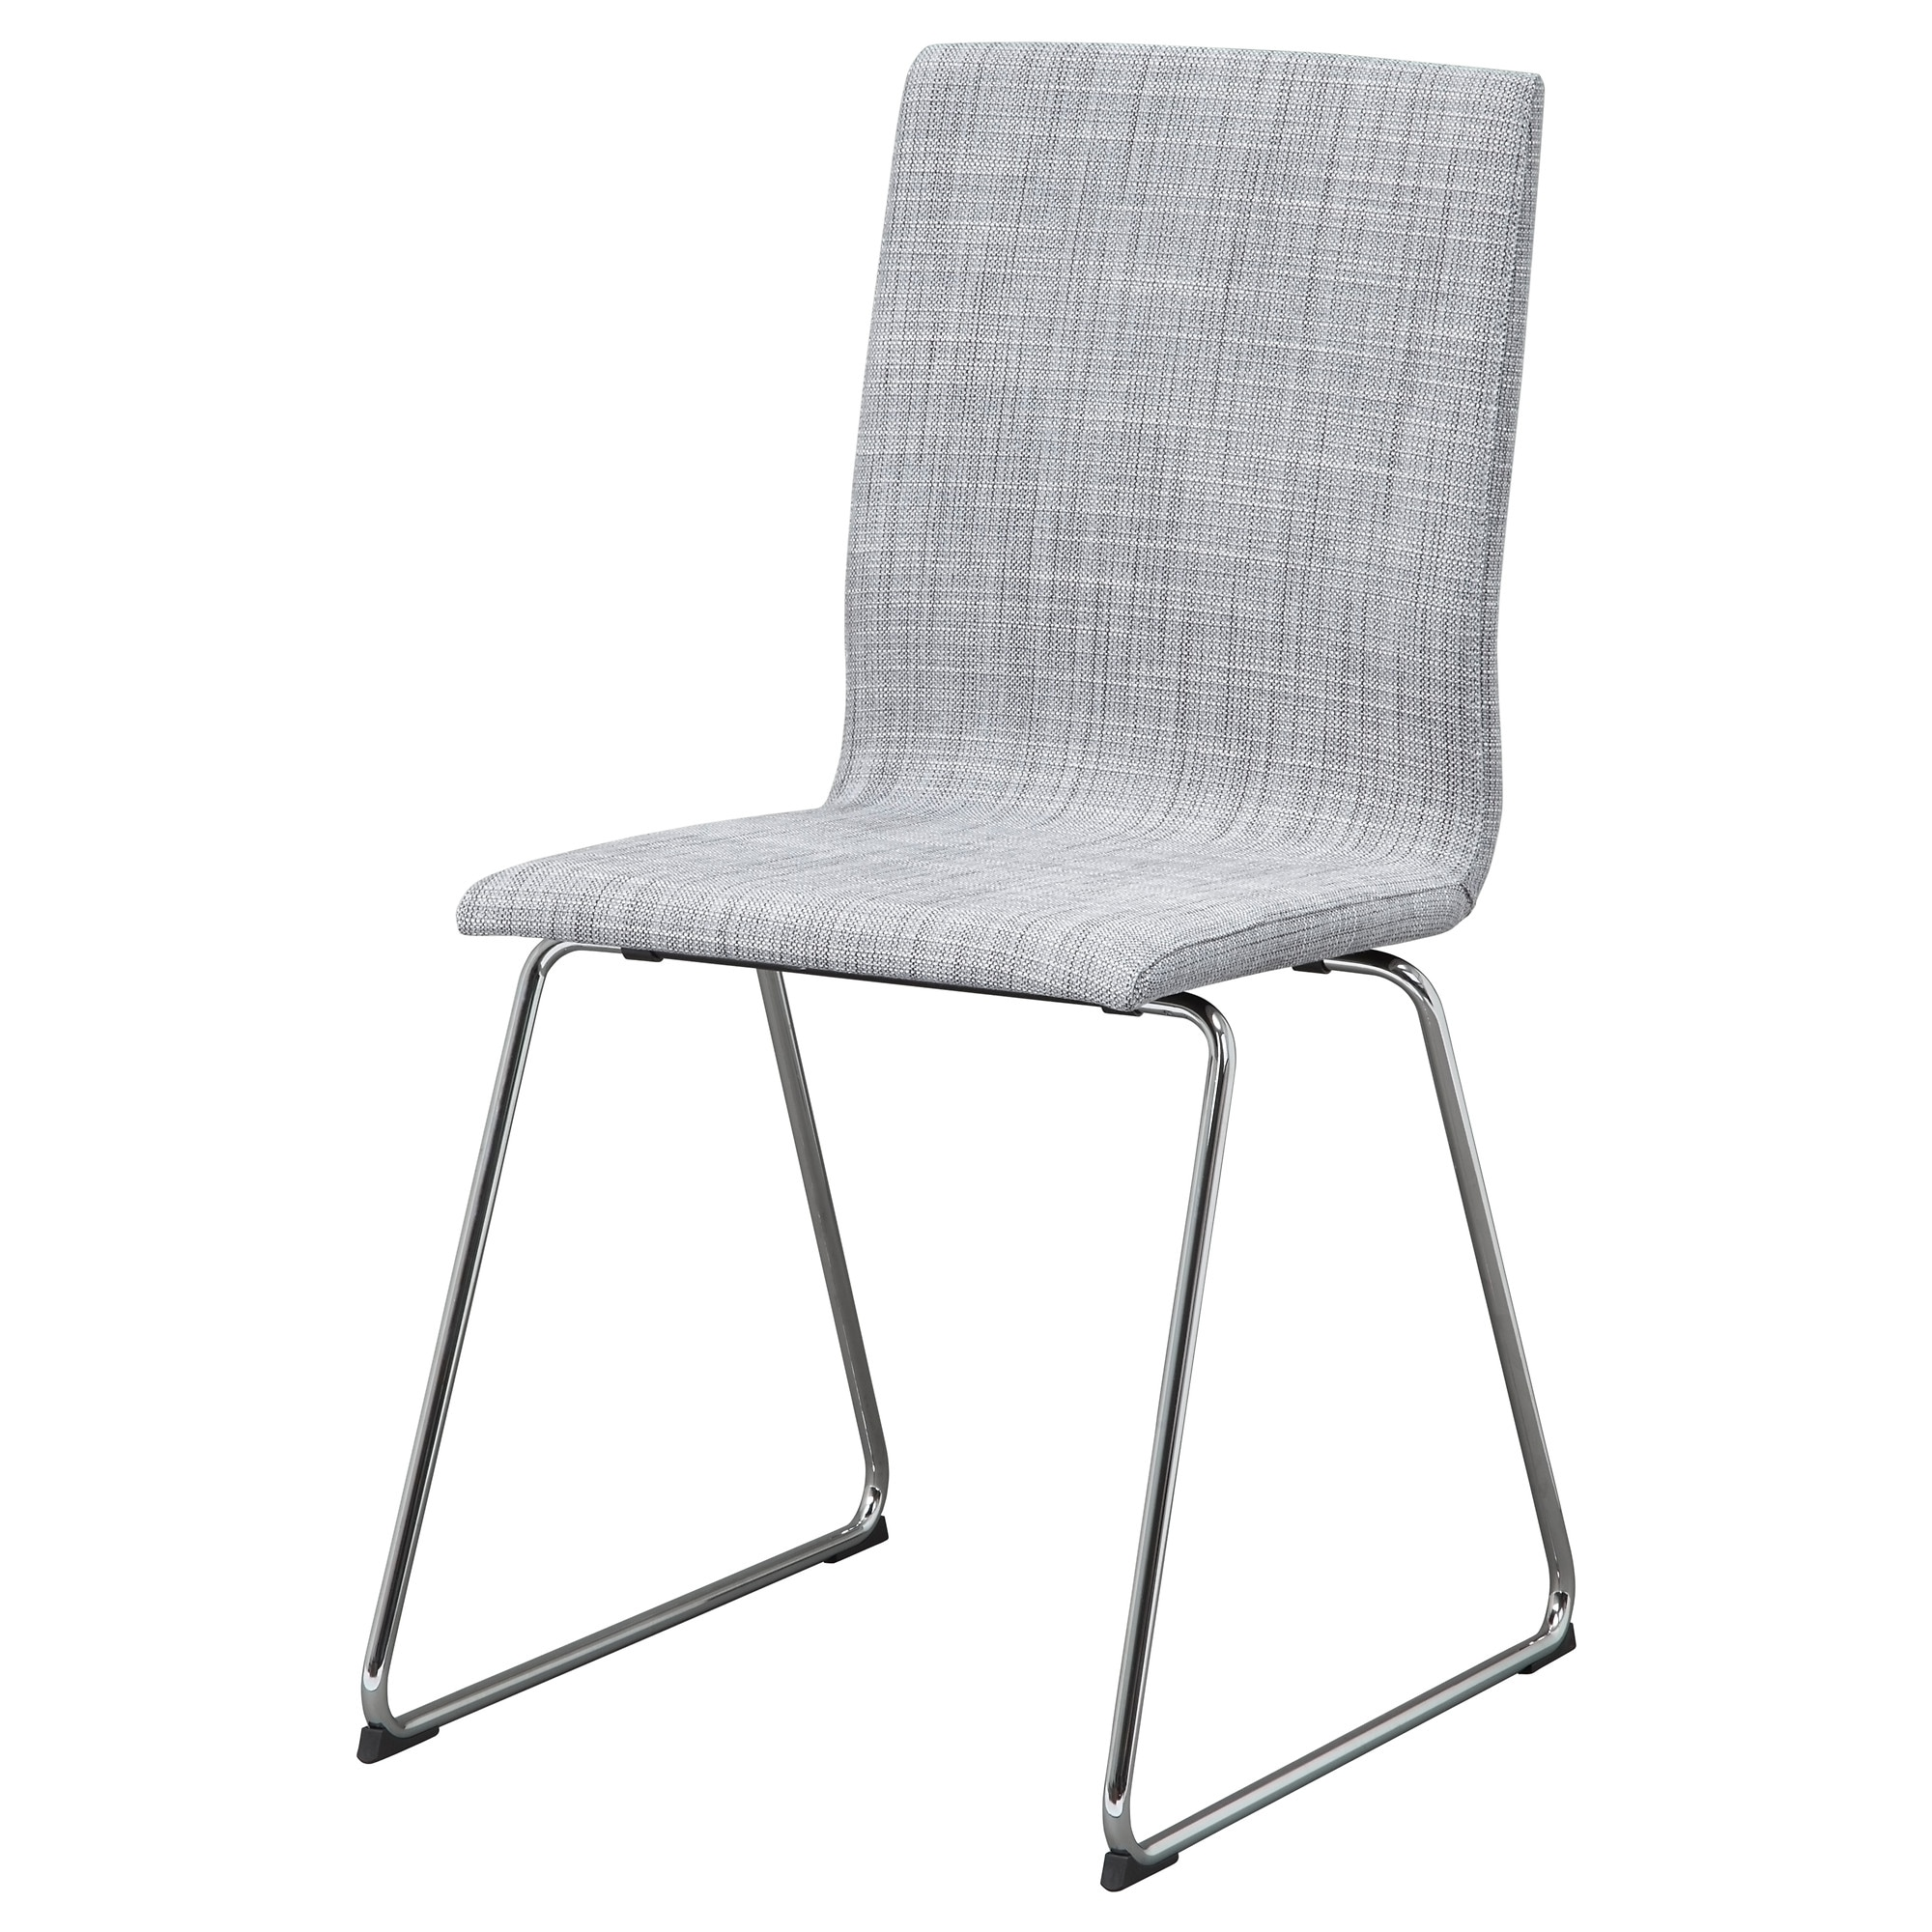 VOLFGANG chair  chrome plated  Isunda gray Tested for  243 lb Width  19Dining chairs   Dining chairs   Upholstered chairs   IKEA. High Back Dining Chairs Ikea. Home Design Ideas